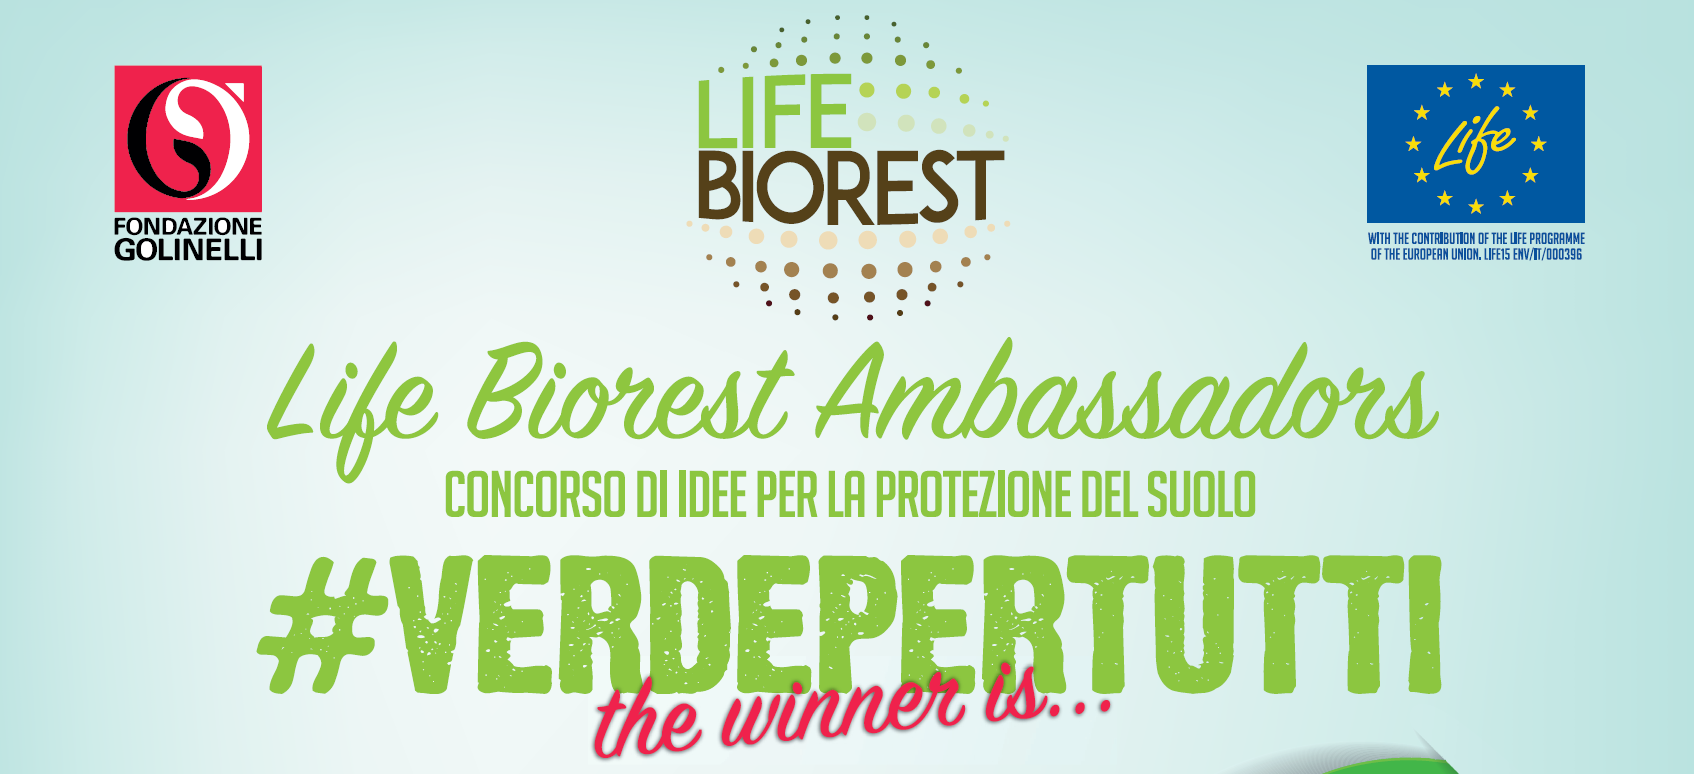 Life Biorest Ambassador award - cover